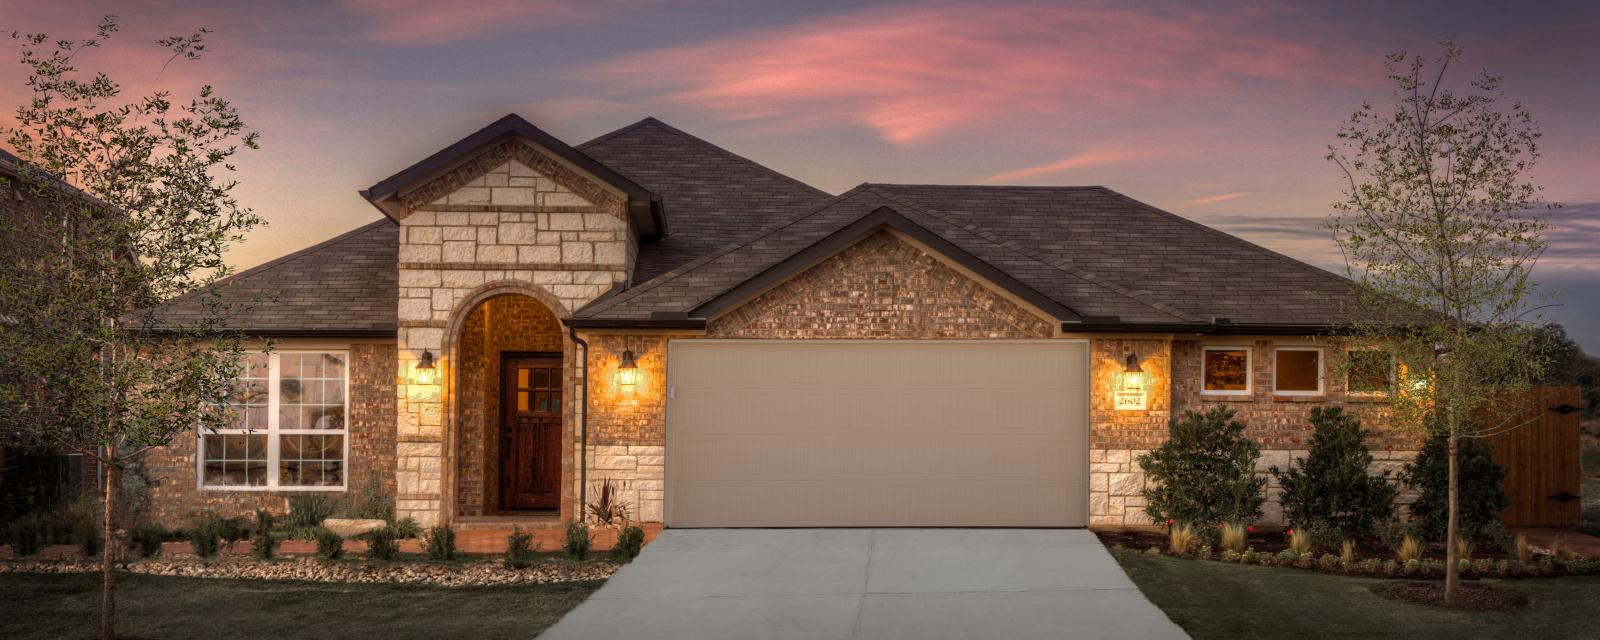 Purser Crossing New Homes Killeen Fort Hood Tx Home